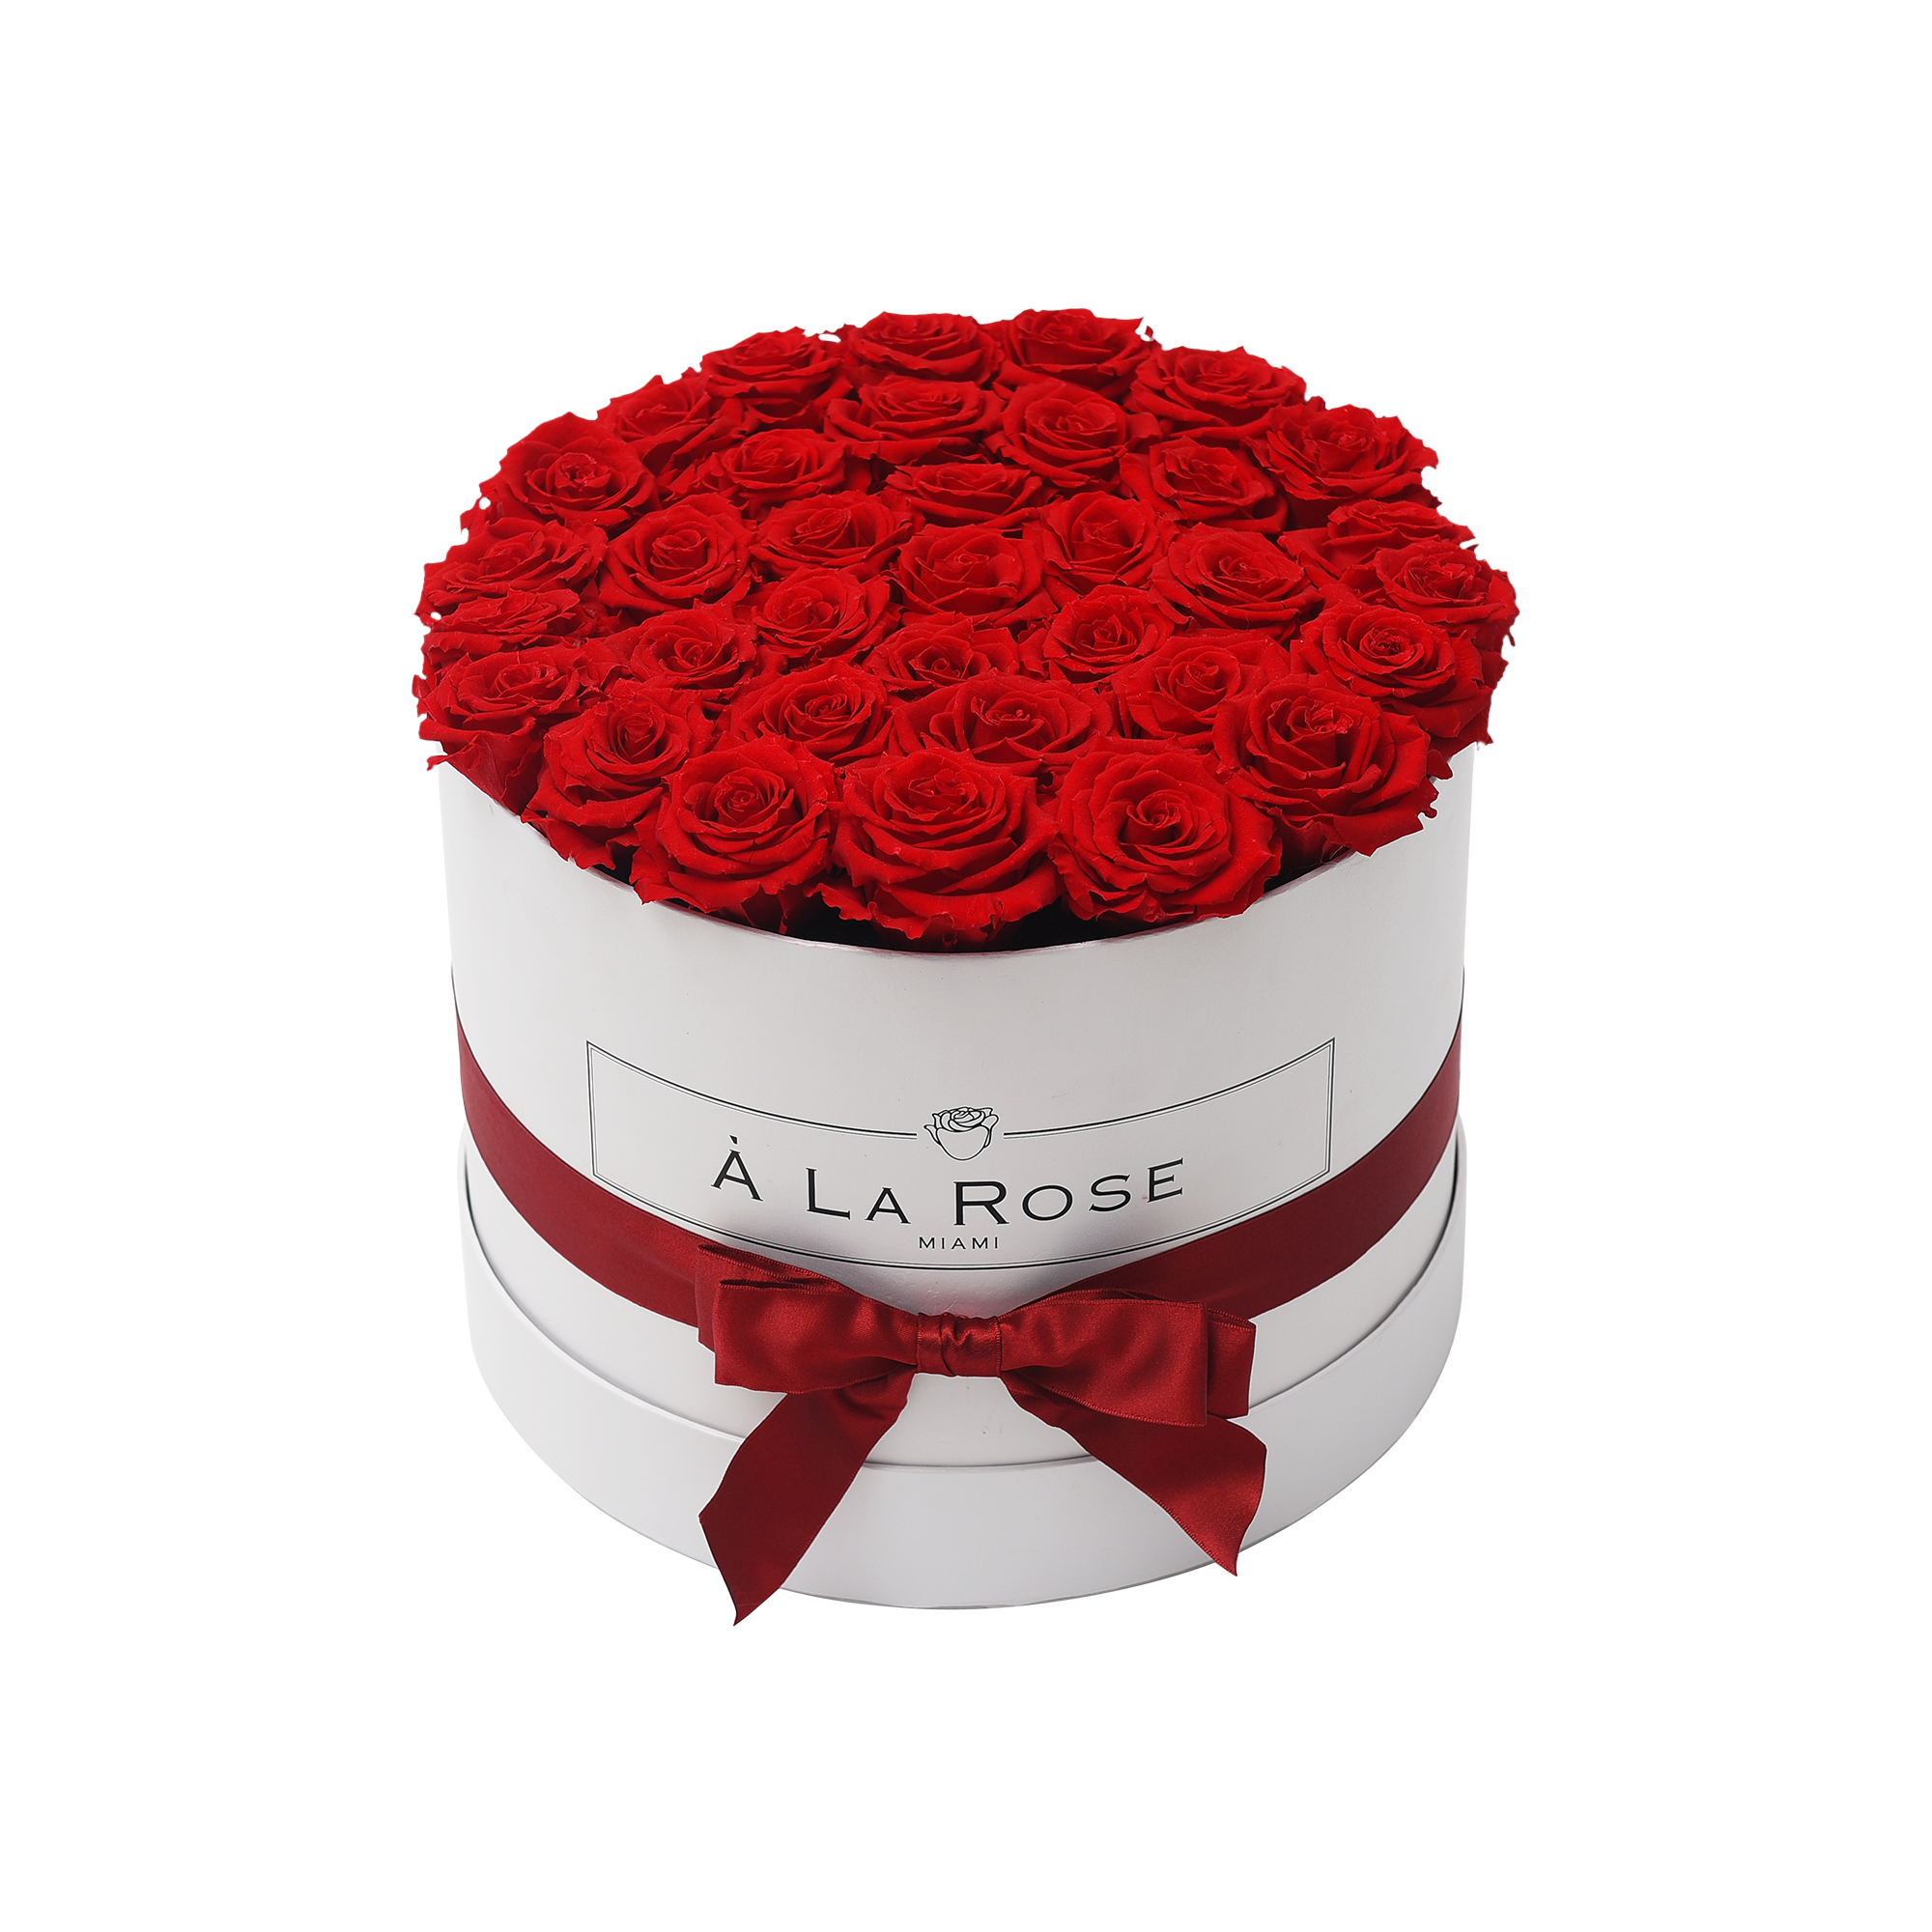 Orb Grand Red Roses A La Rose